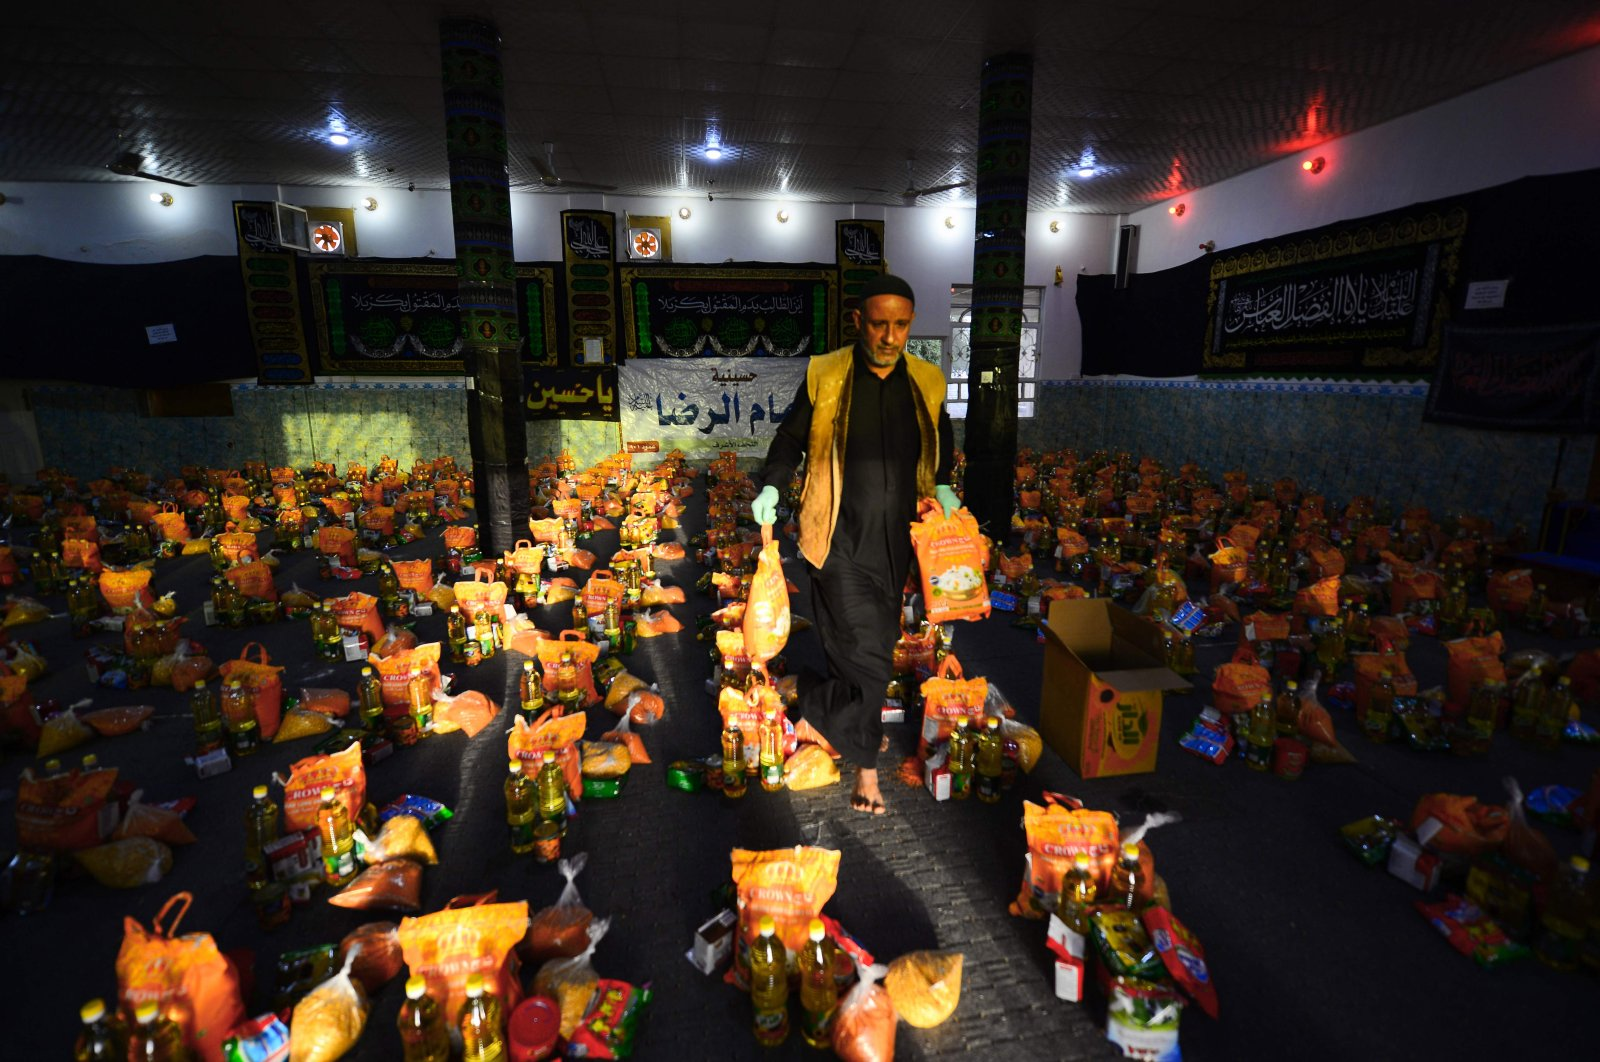 A man sorts donations for families in need during the COVID-19 pandemic in the holy city of Najaf, Iraq on March 25, 2020 (AFP Photo)